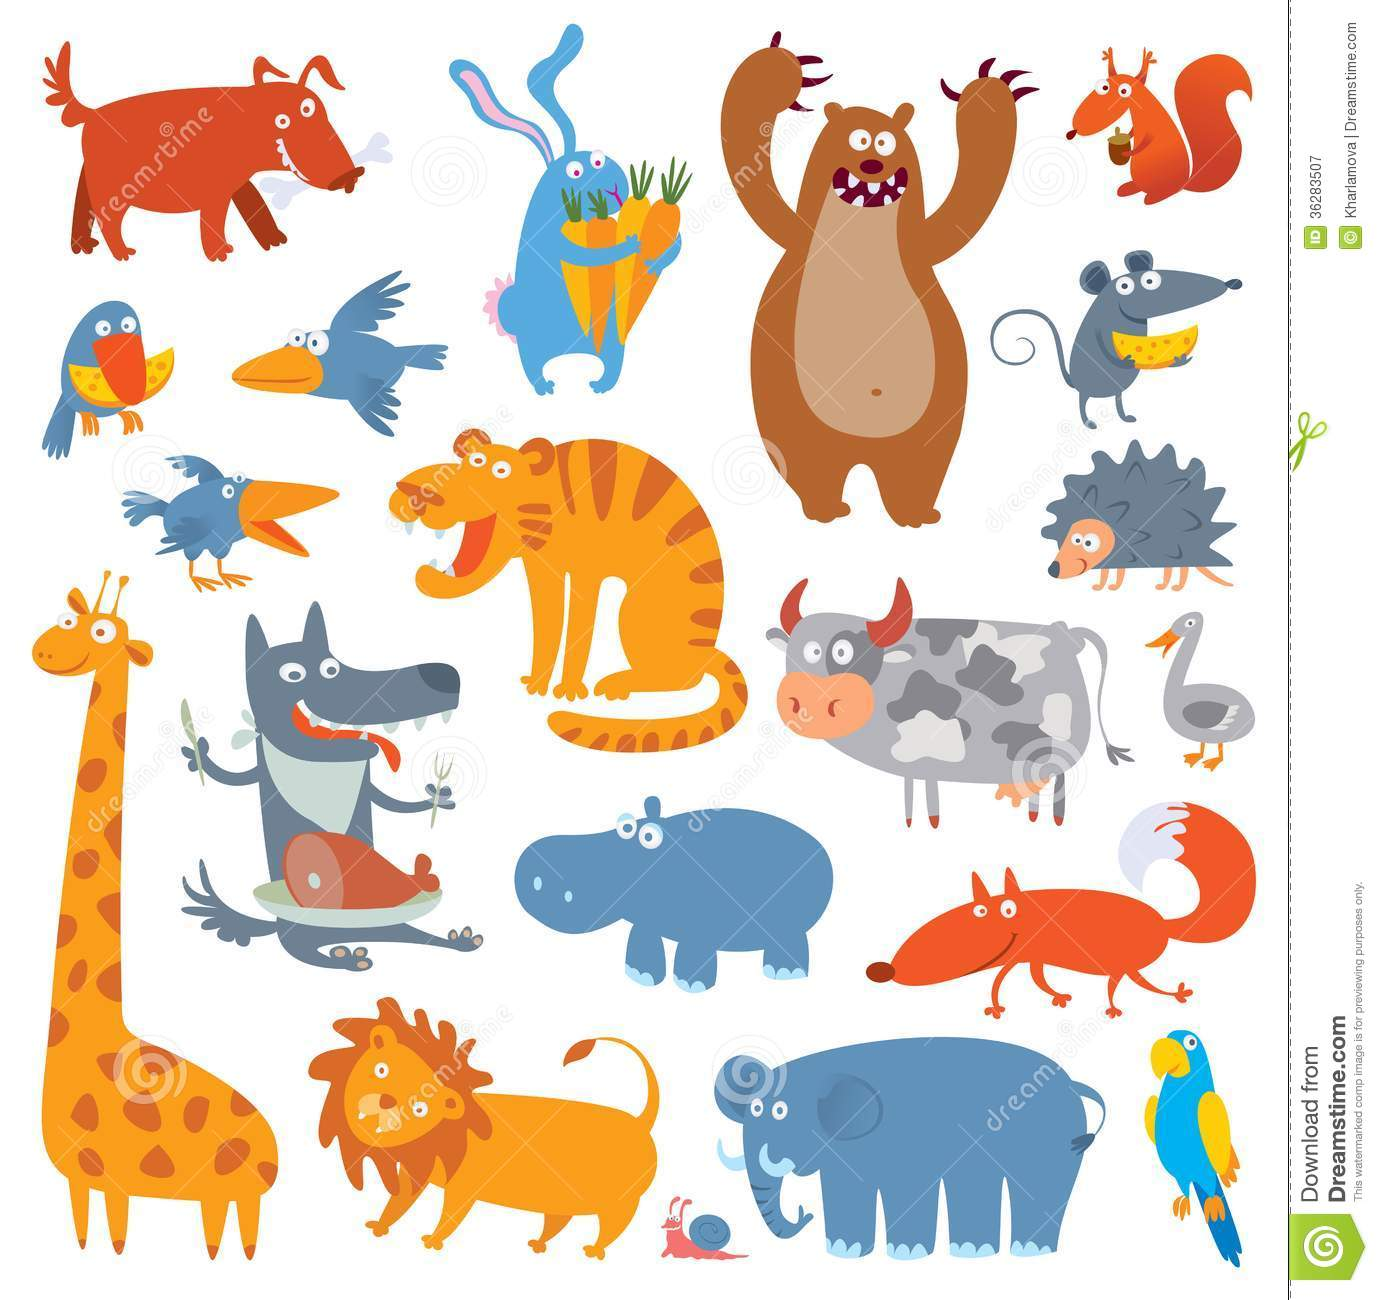 Cute Zoo Animals Royalty Free Stock Photography  Image